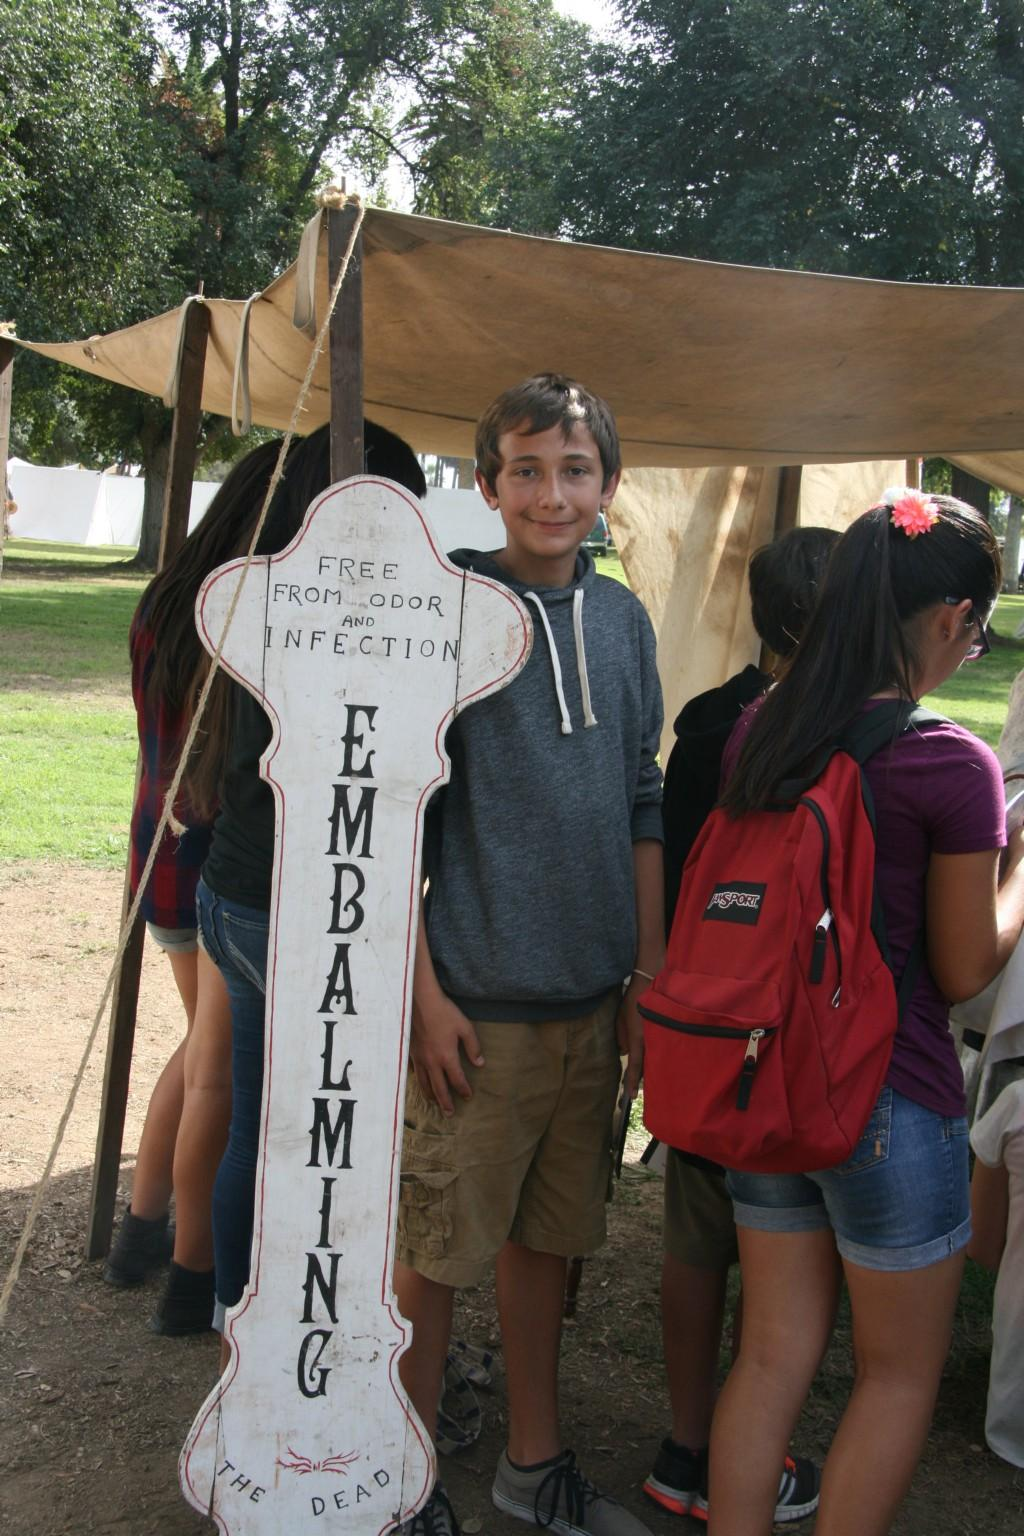 TLR student next to sign